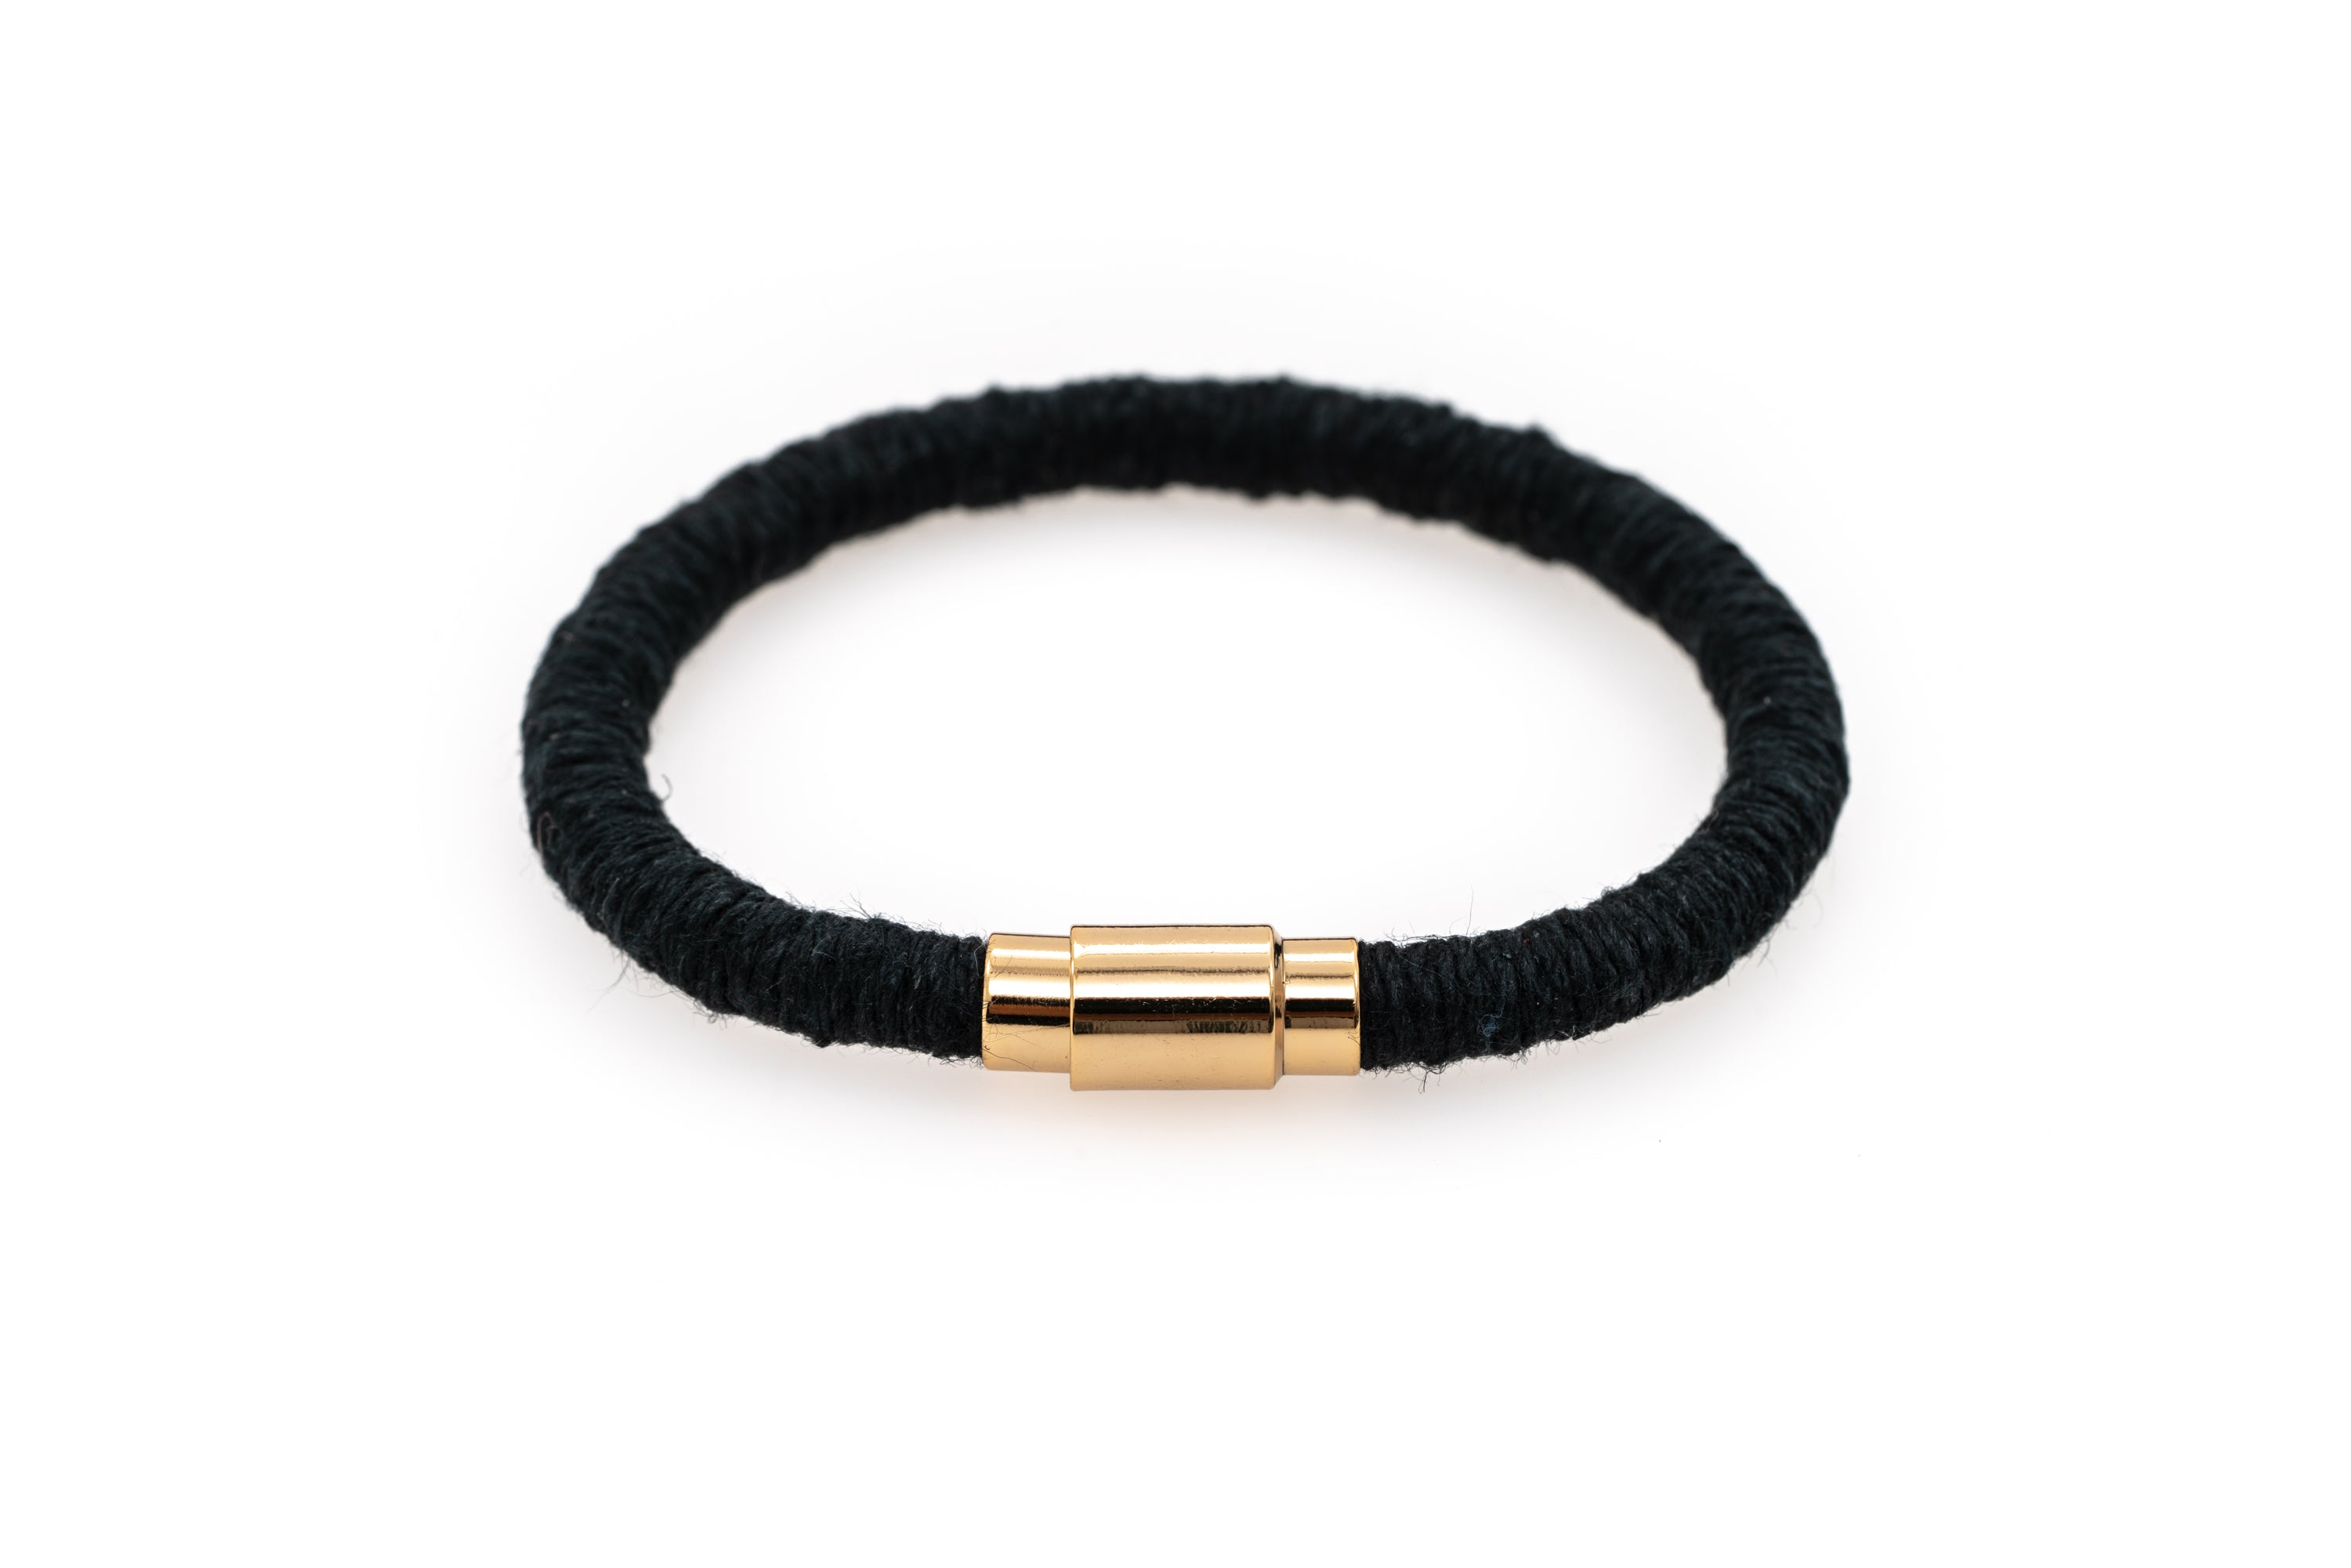 Fiber Art Jewelry Hemp Wrapped Bracelet Size S - Black / Gold Plated Magnet